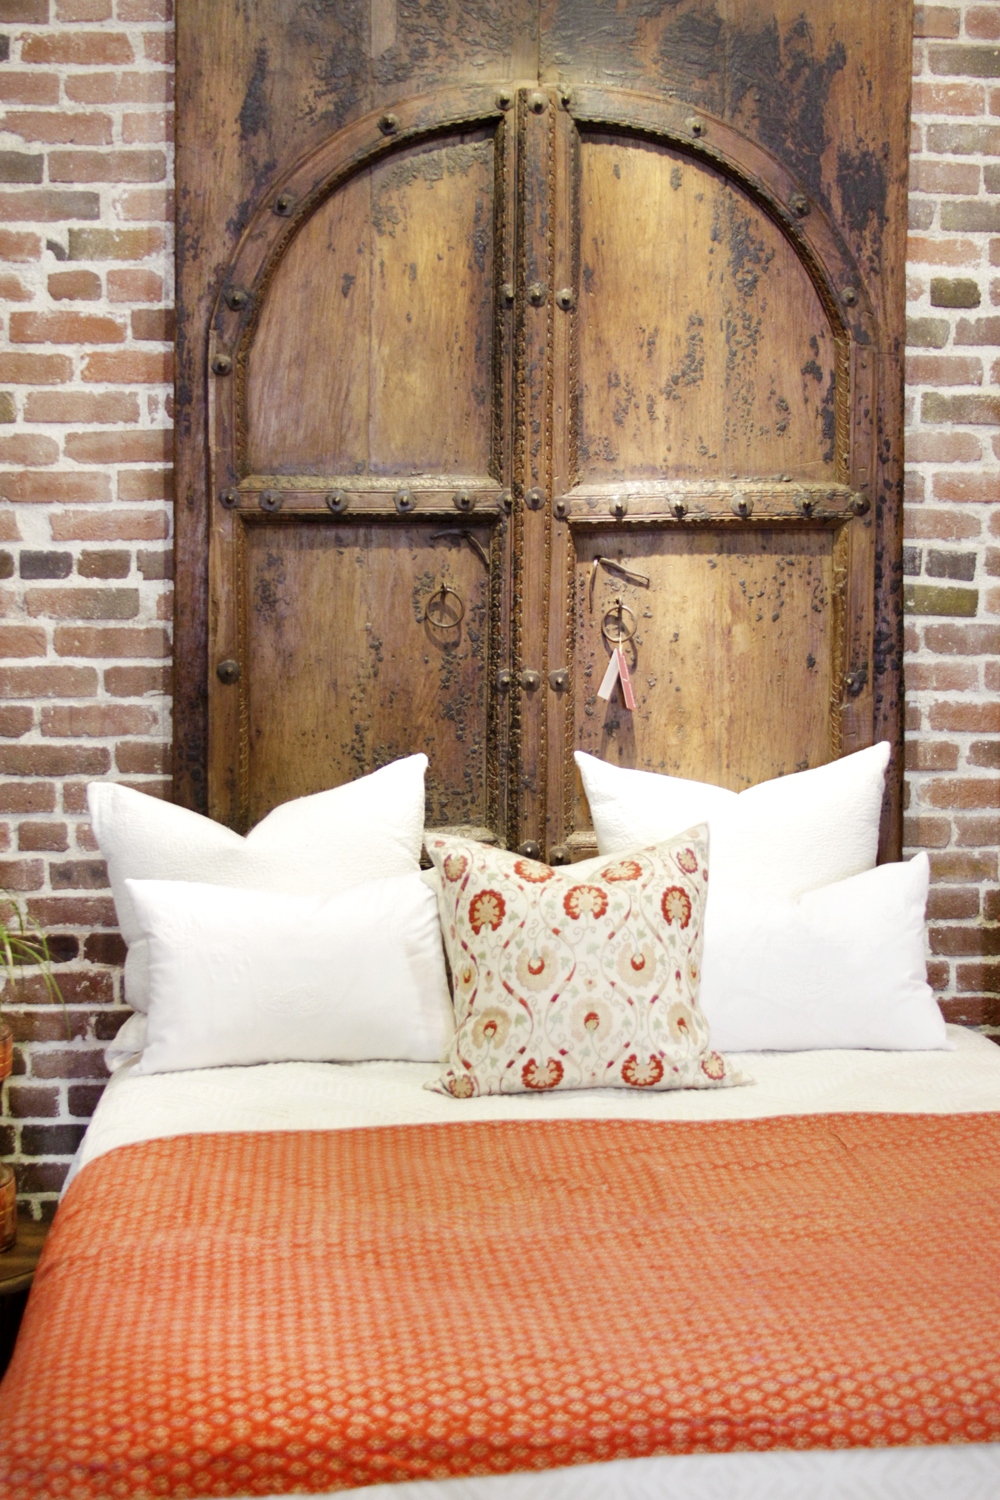 Tall Arched Antique Spanish Entrance Doors, Pair. « - Tall Arched Antique Spanish Entrance Doors, Pair Omero Home